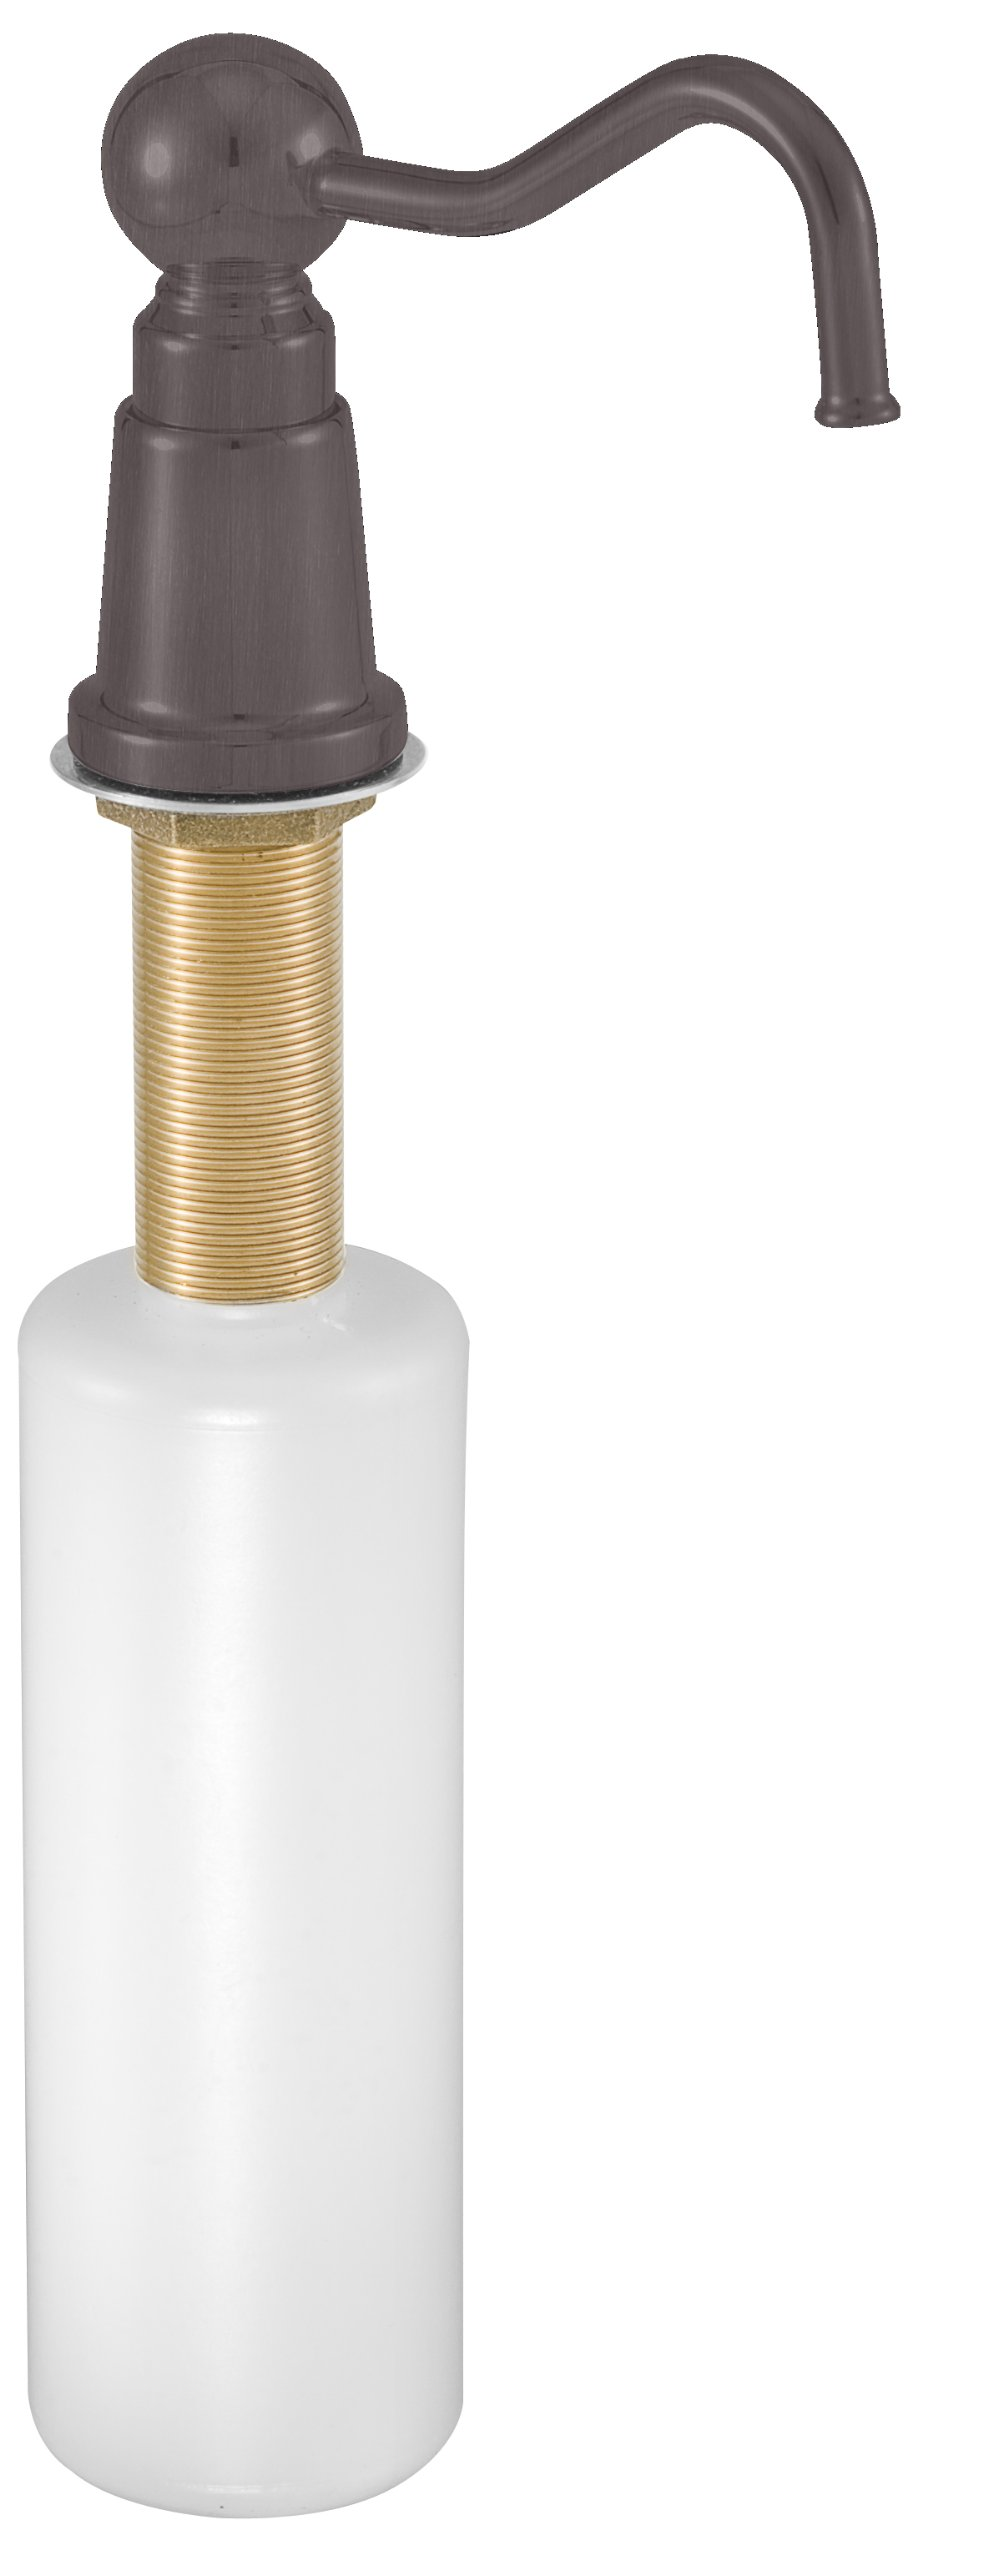 Westbrass Country Style Kitchen Soap/Lotion Dispenser, Oil Rubbed Bronze, D2175-12 by Westbrass